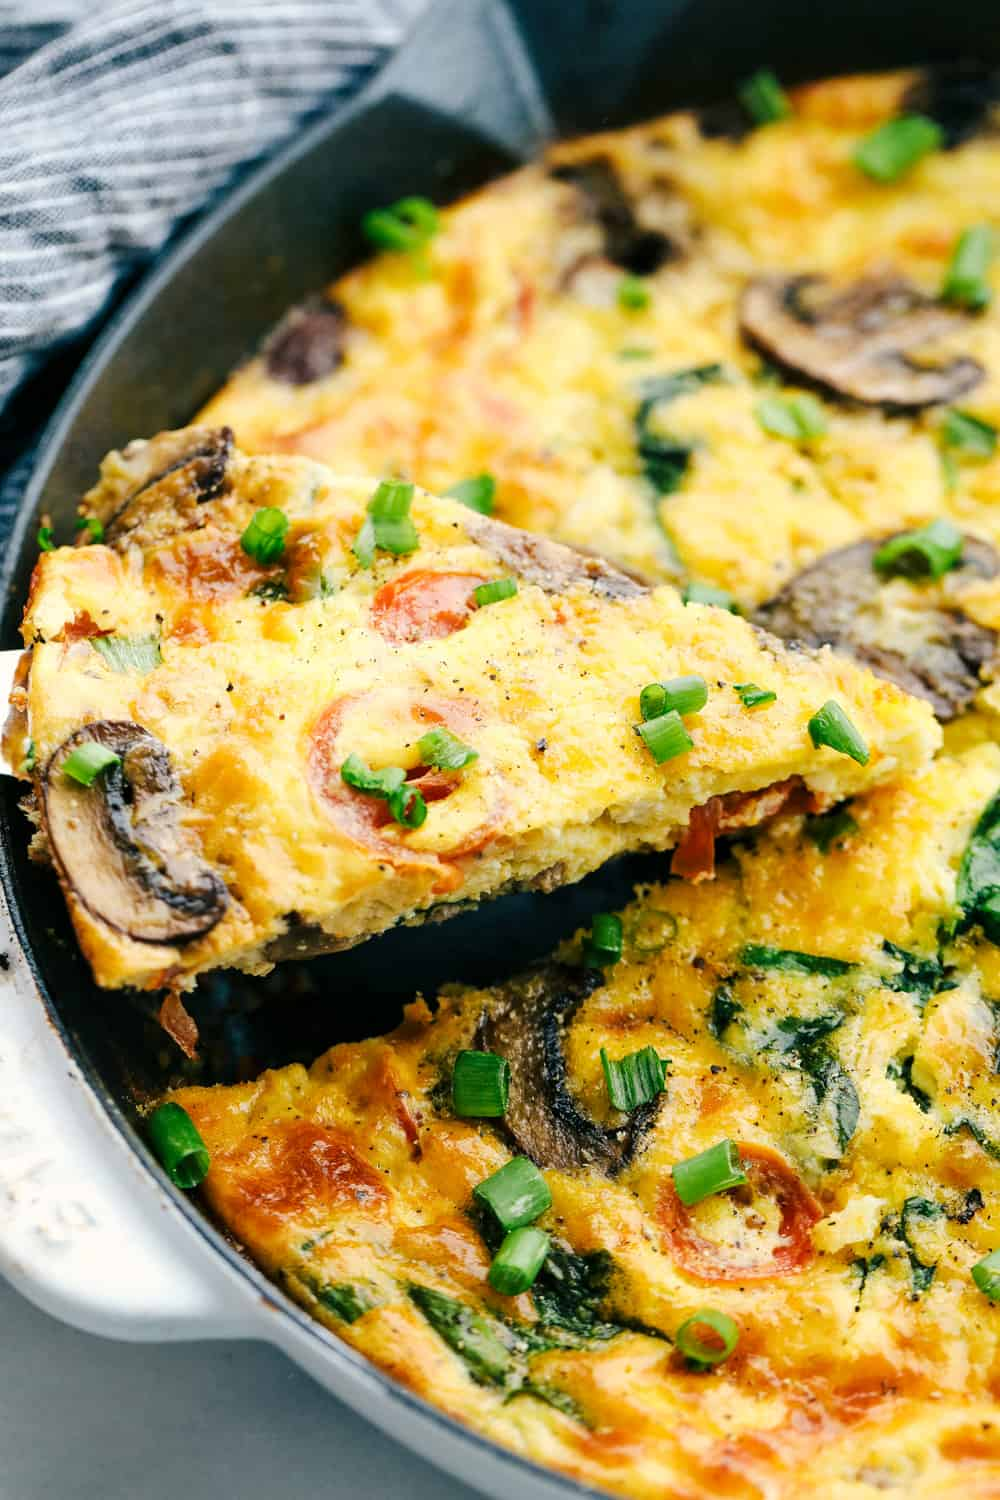 Breakfast frittata cooked in a skillet.